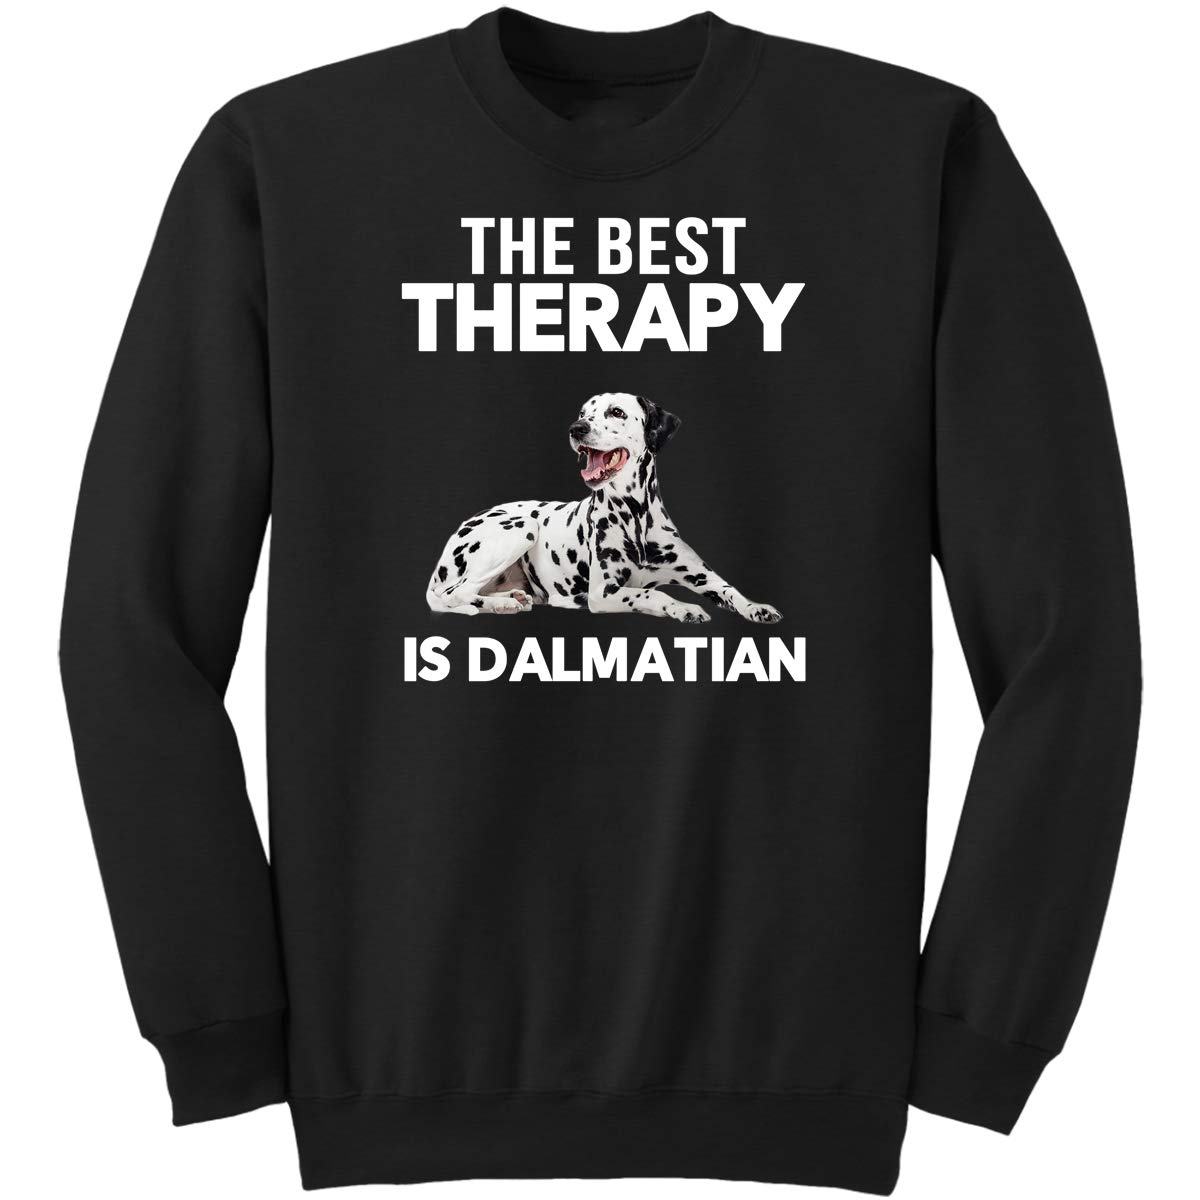 Funny Gifts for Pet Lover Sweatshirt The Best Therapy is Dalmatian Dog